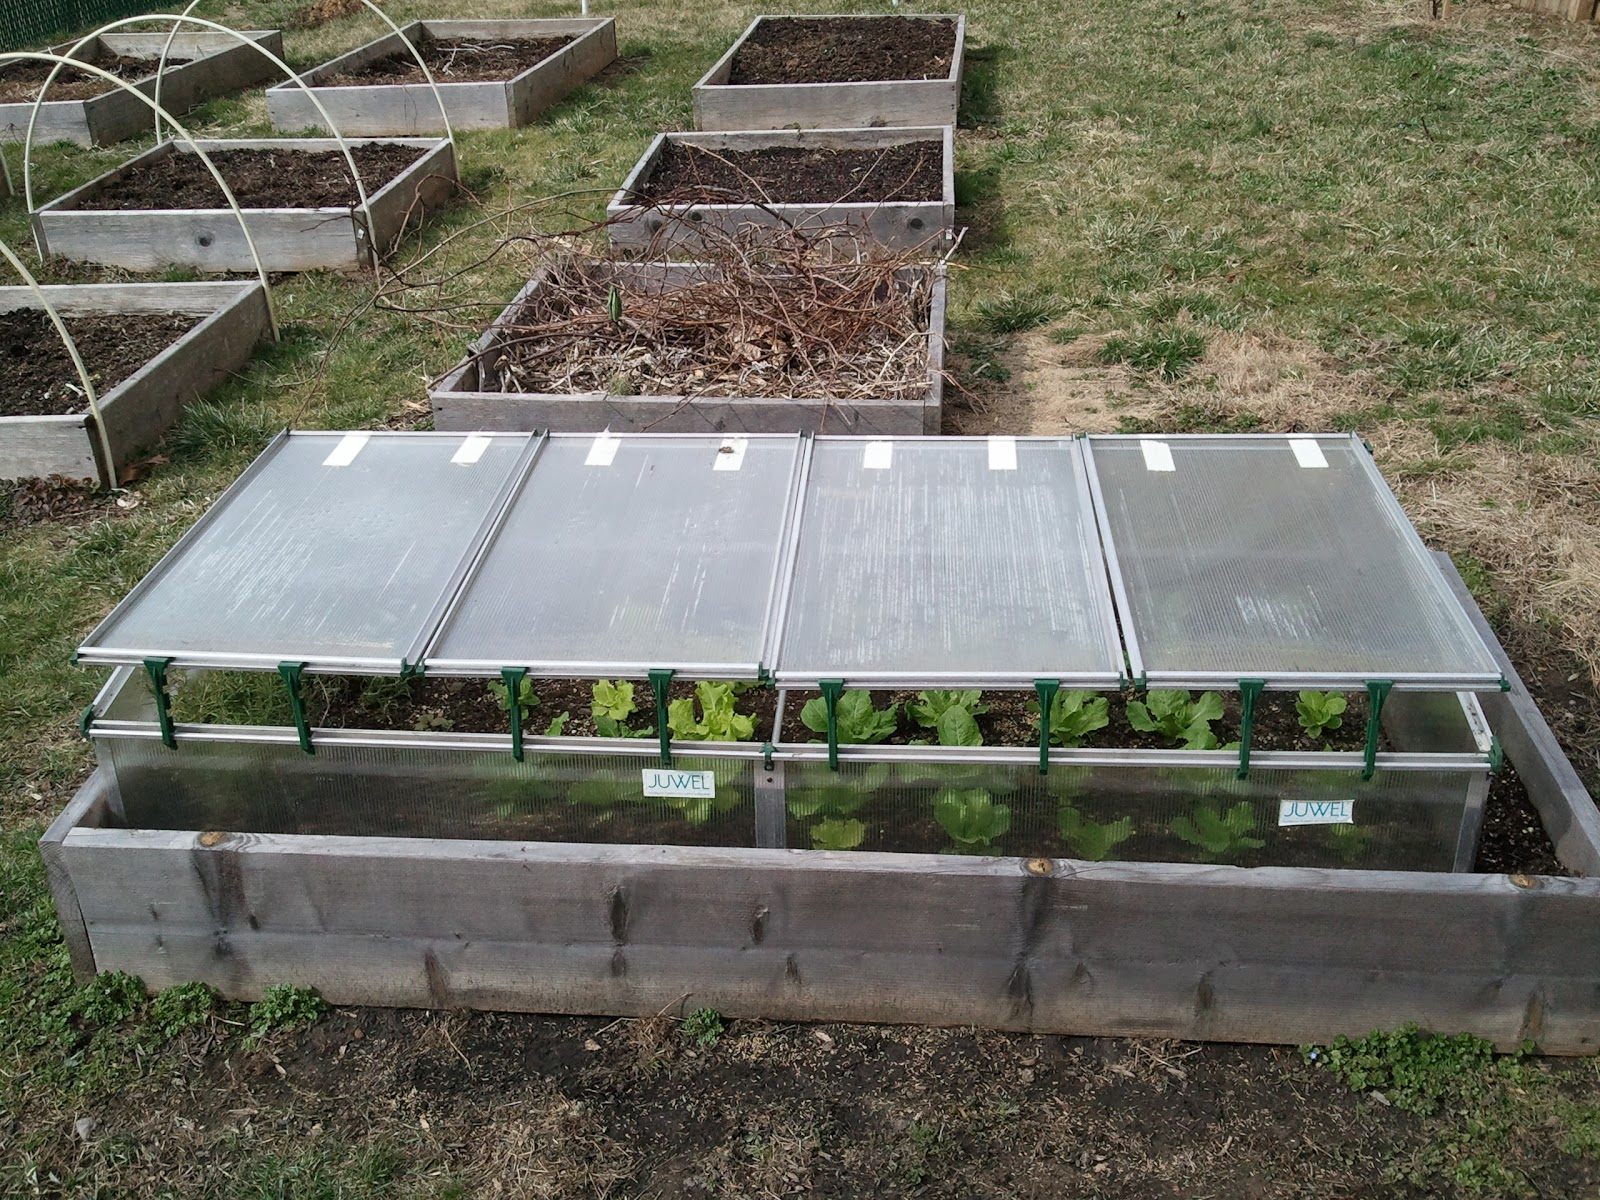 italian gardening cold frame protects plants during winter